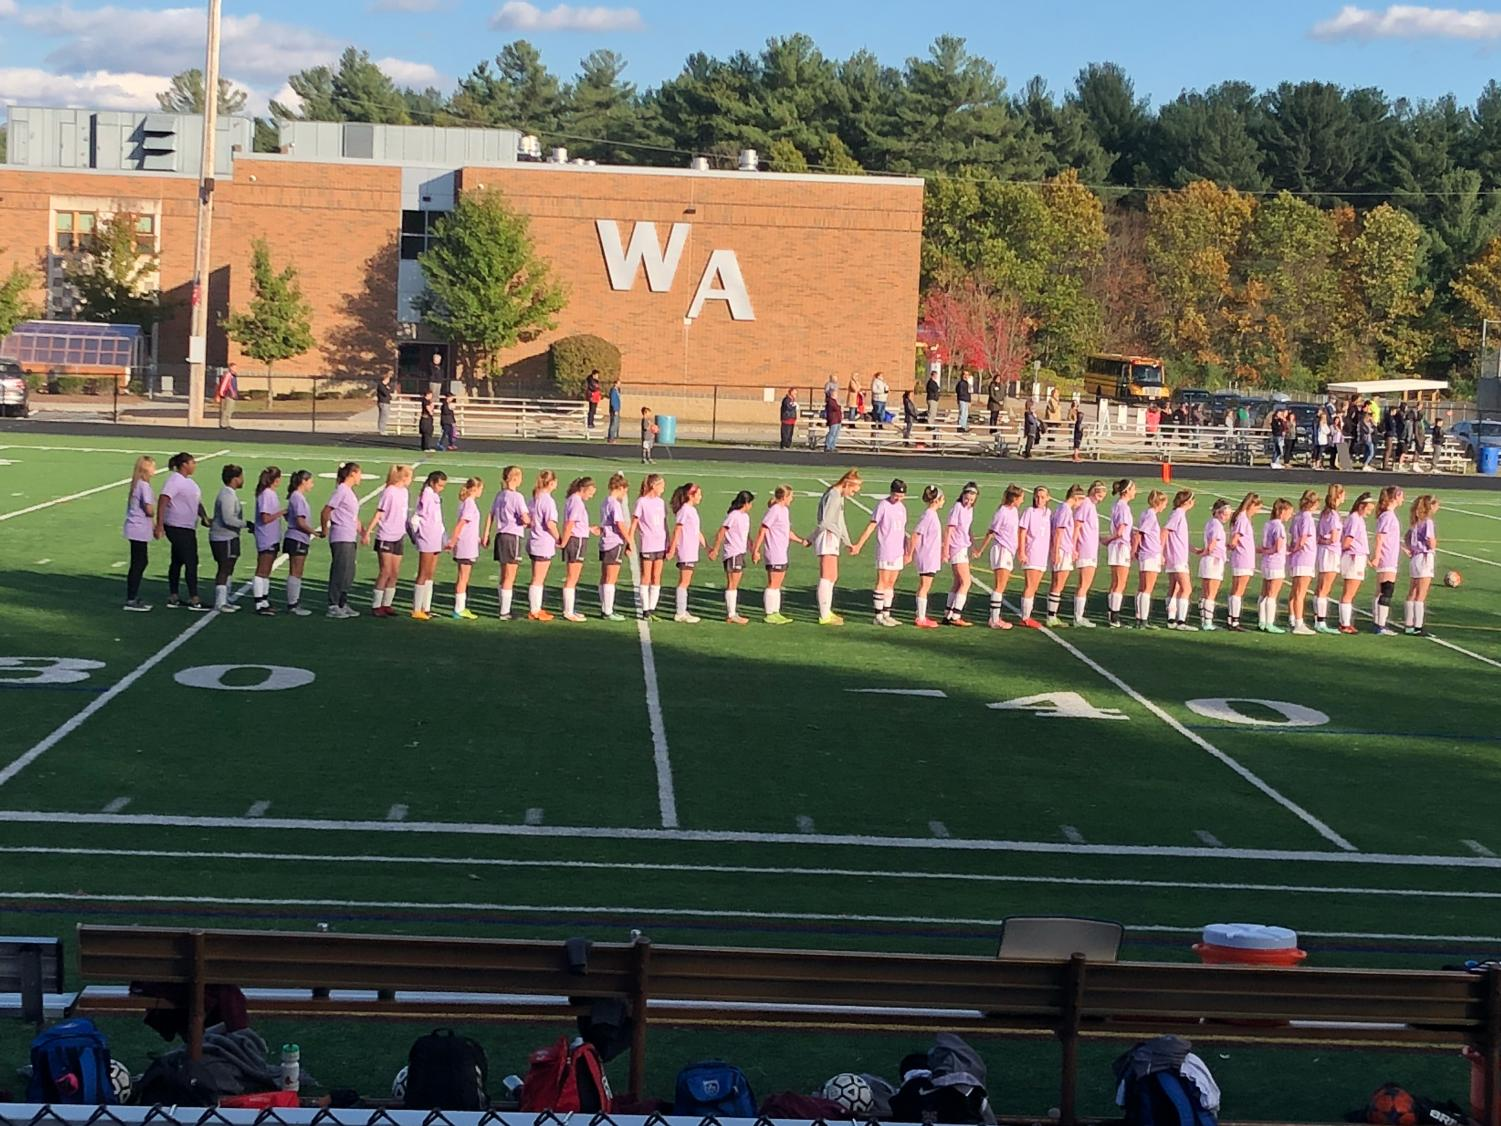 Taken on October 31, 2017 at the WA girls varsity soccer game against Chelmsford